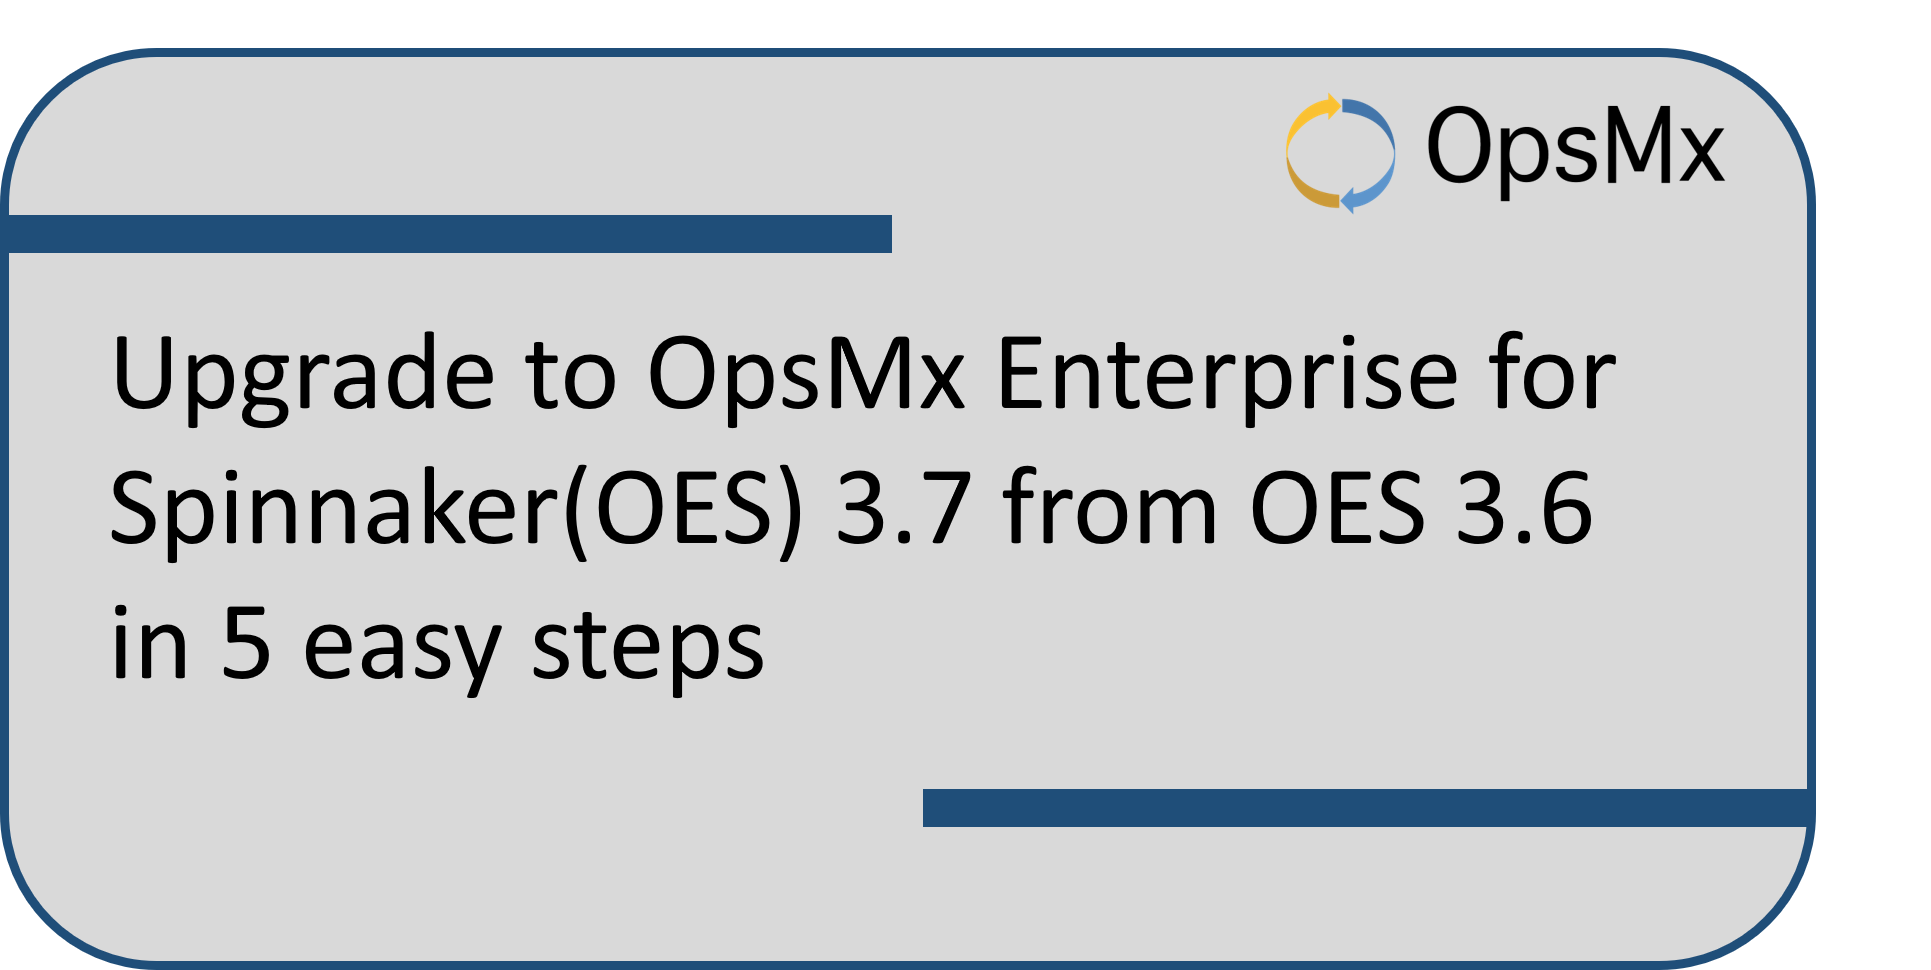 Upgrade to OES 3.7 from OES 3.6